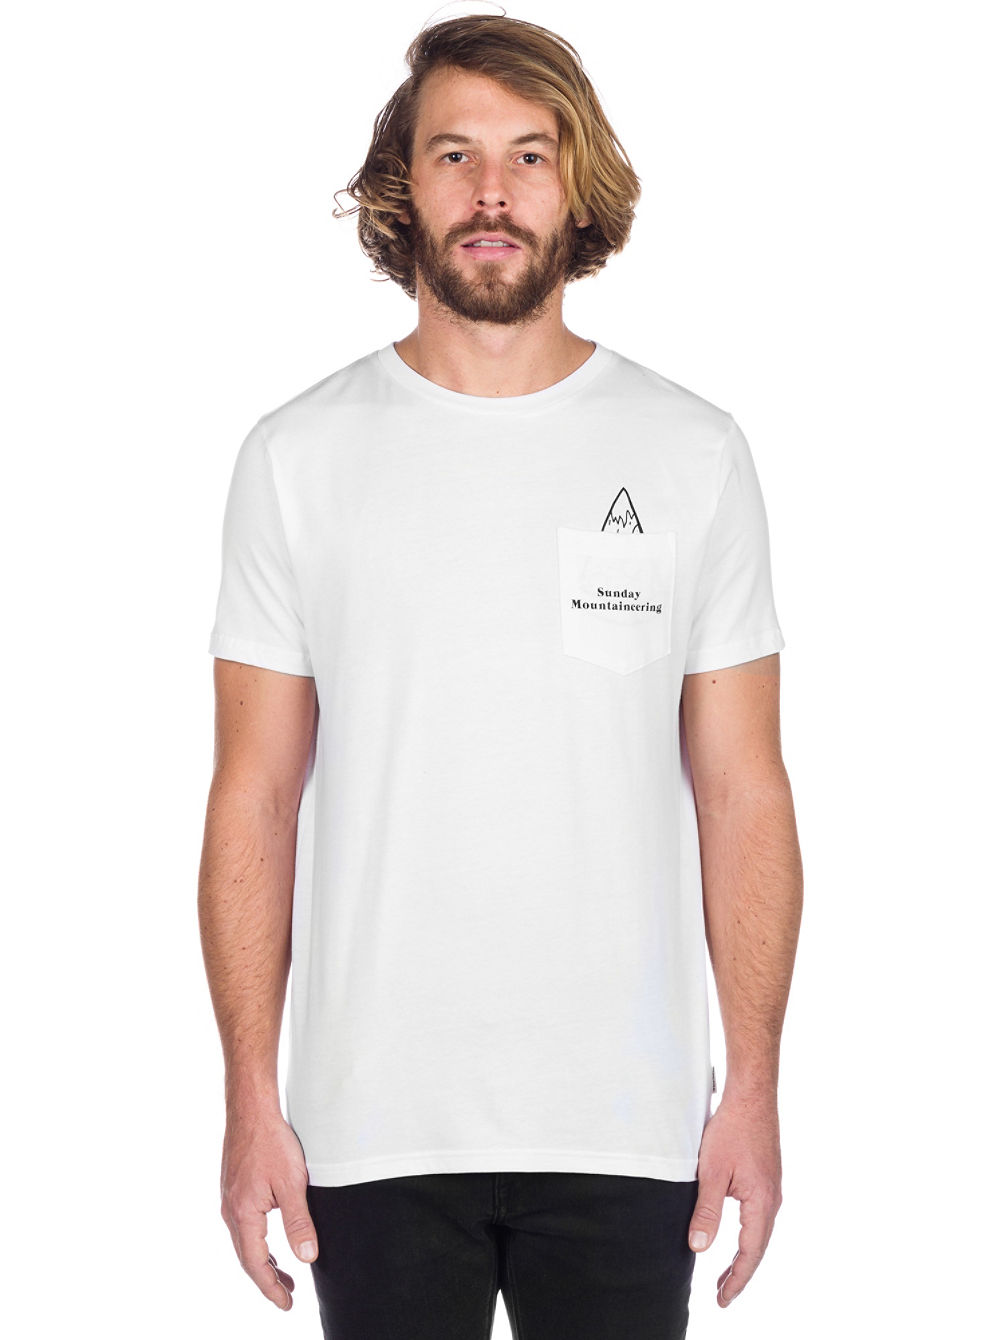 Sunday Mountaineering T-Shirt